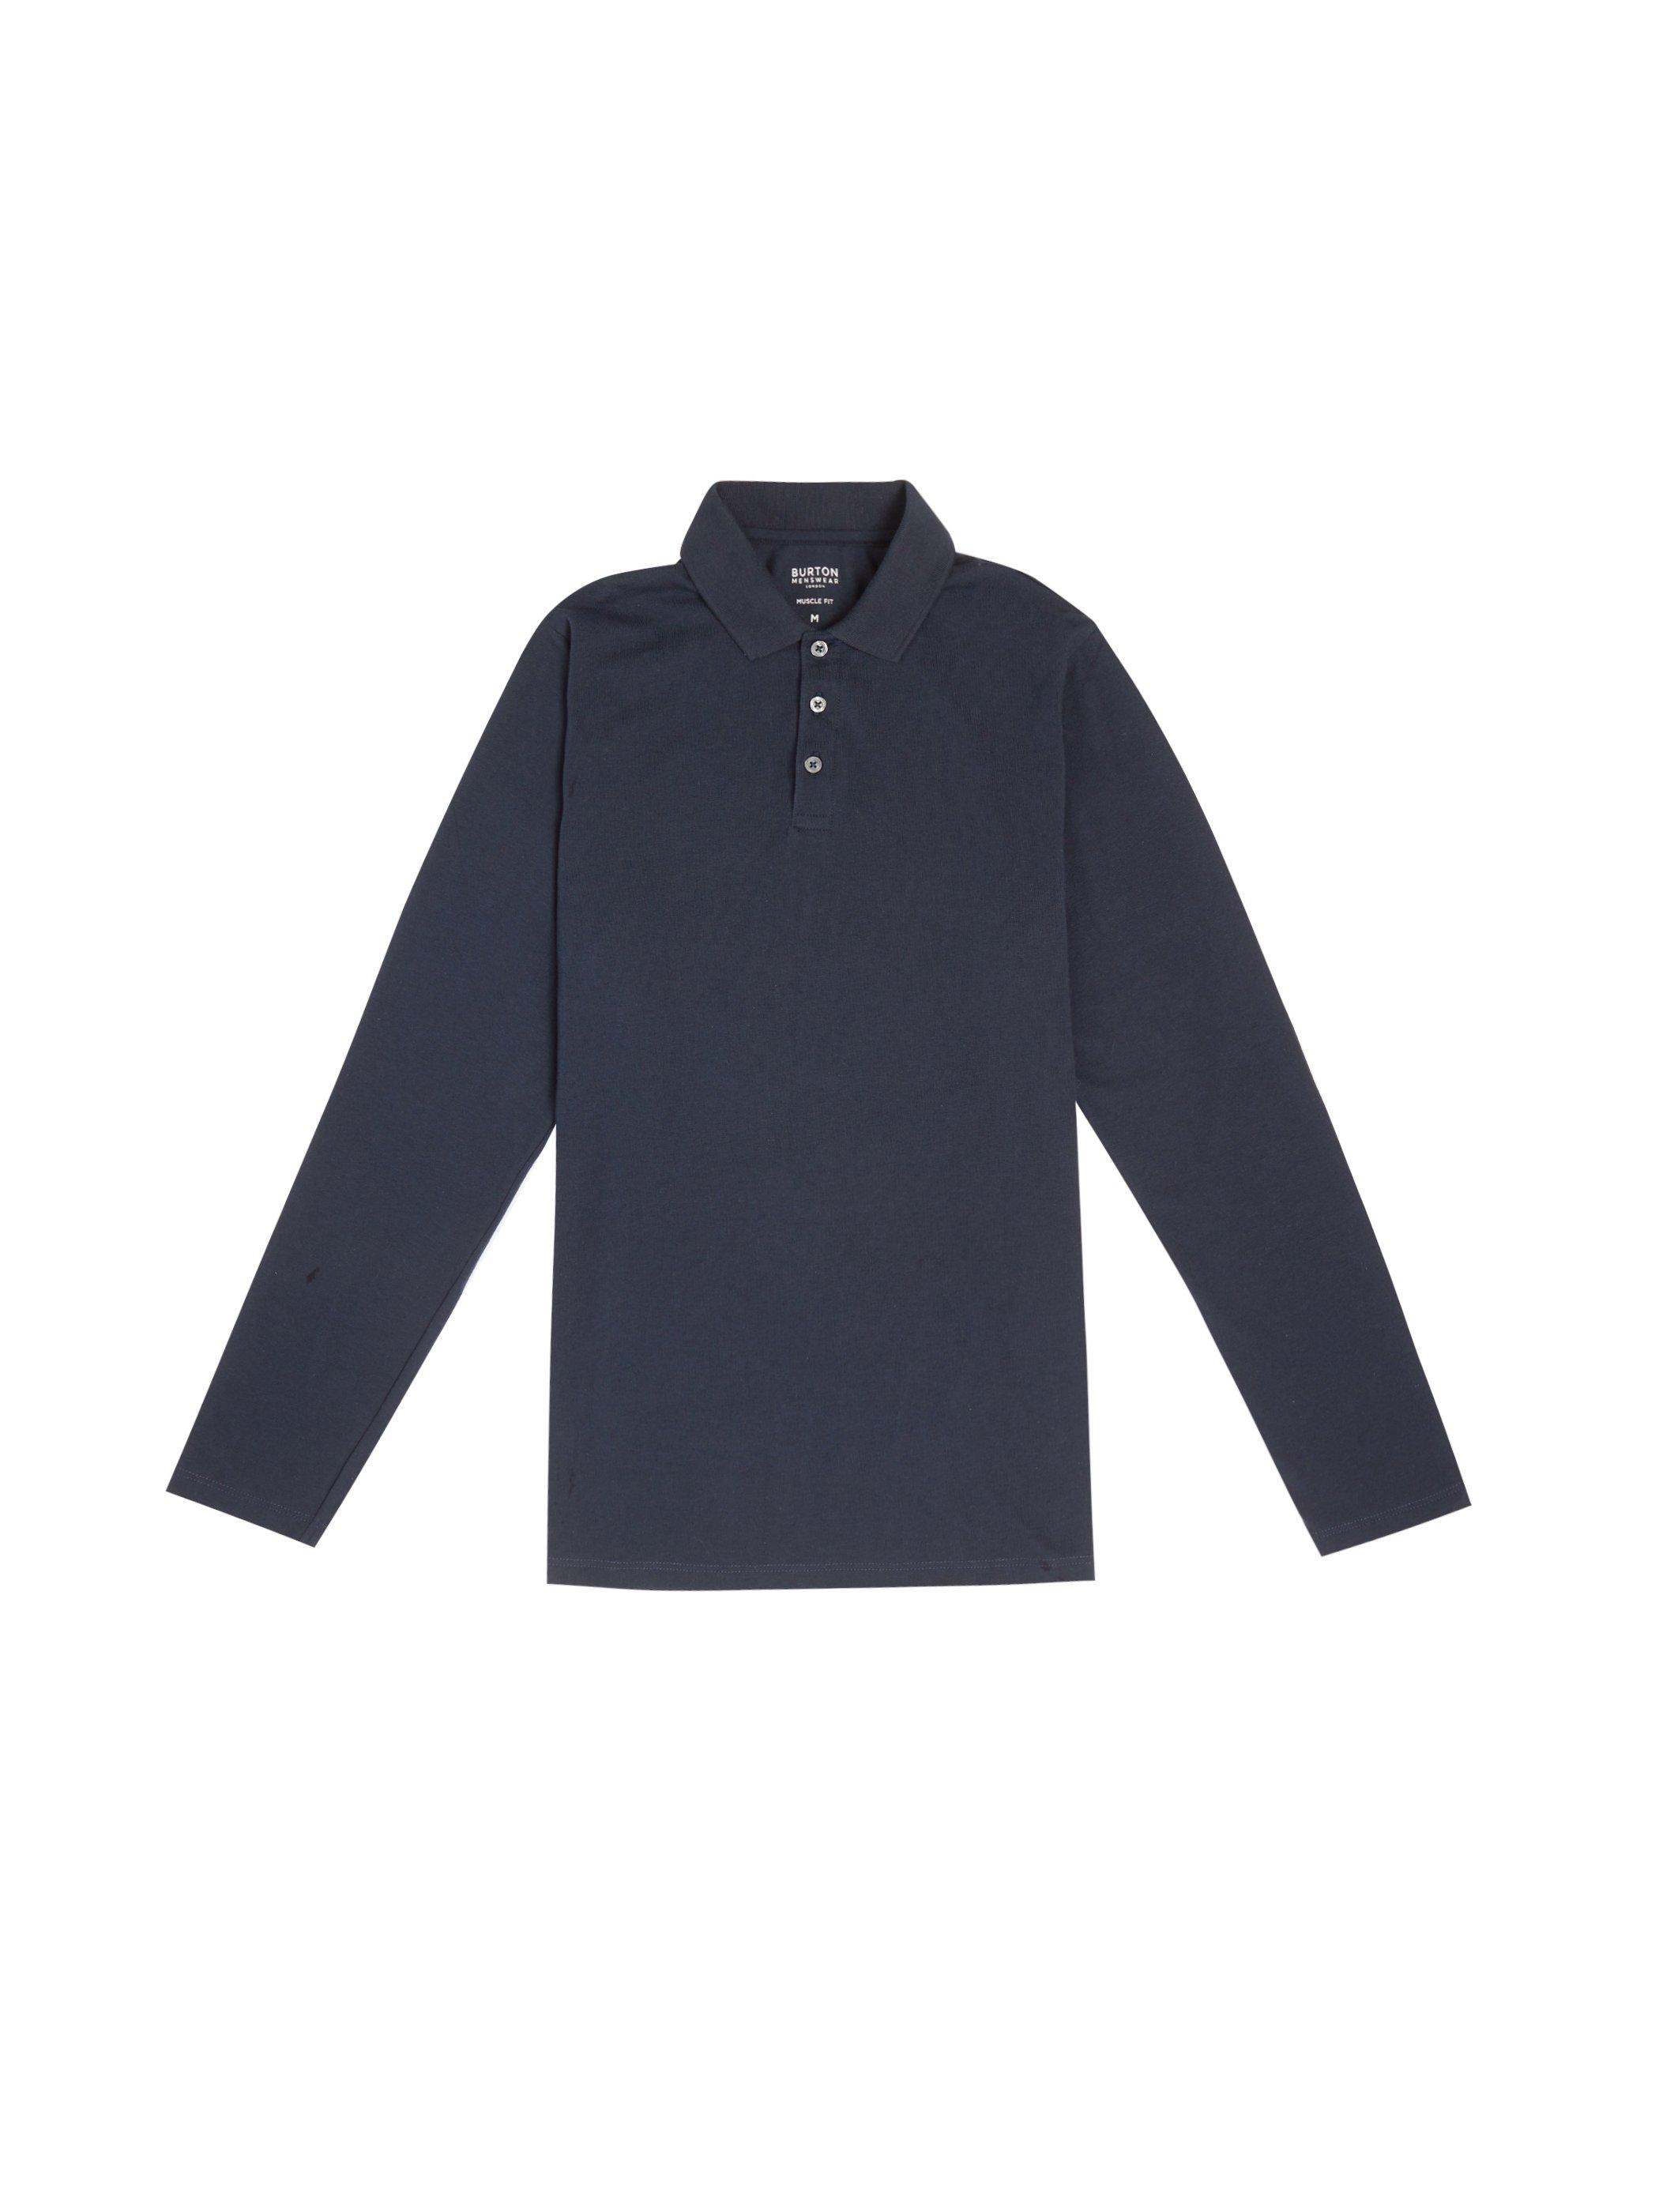 Men'S Navy Long Sleeved Muscle Polo Shirt - S